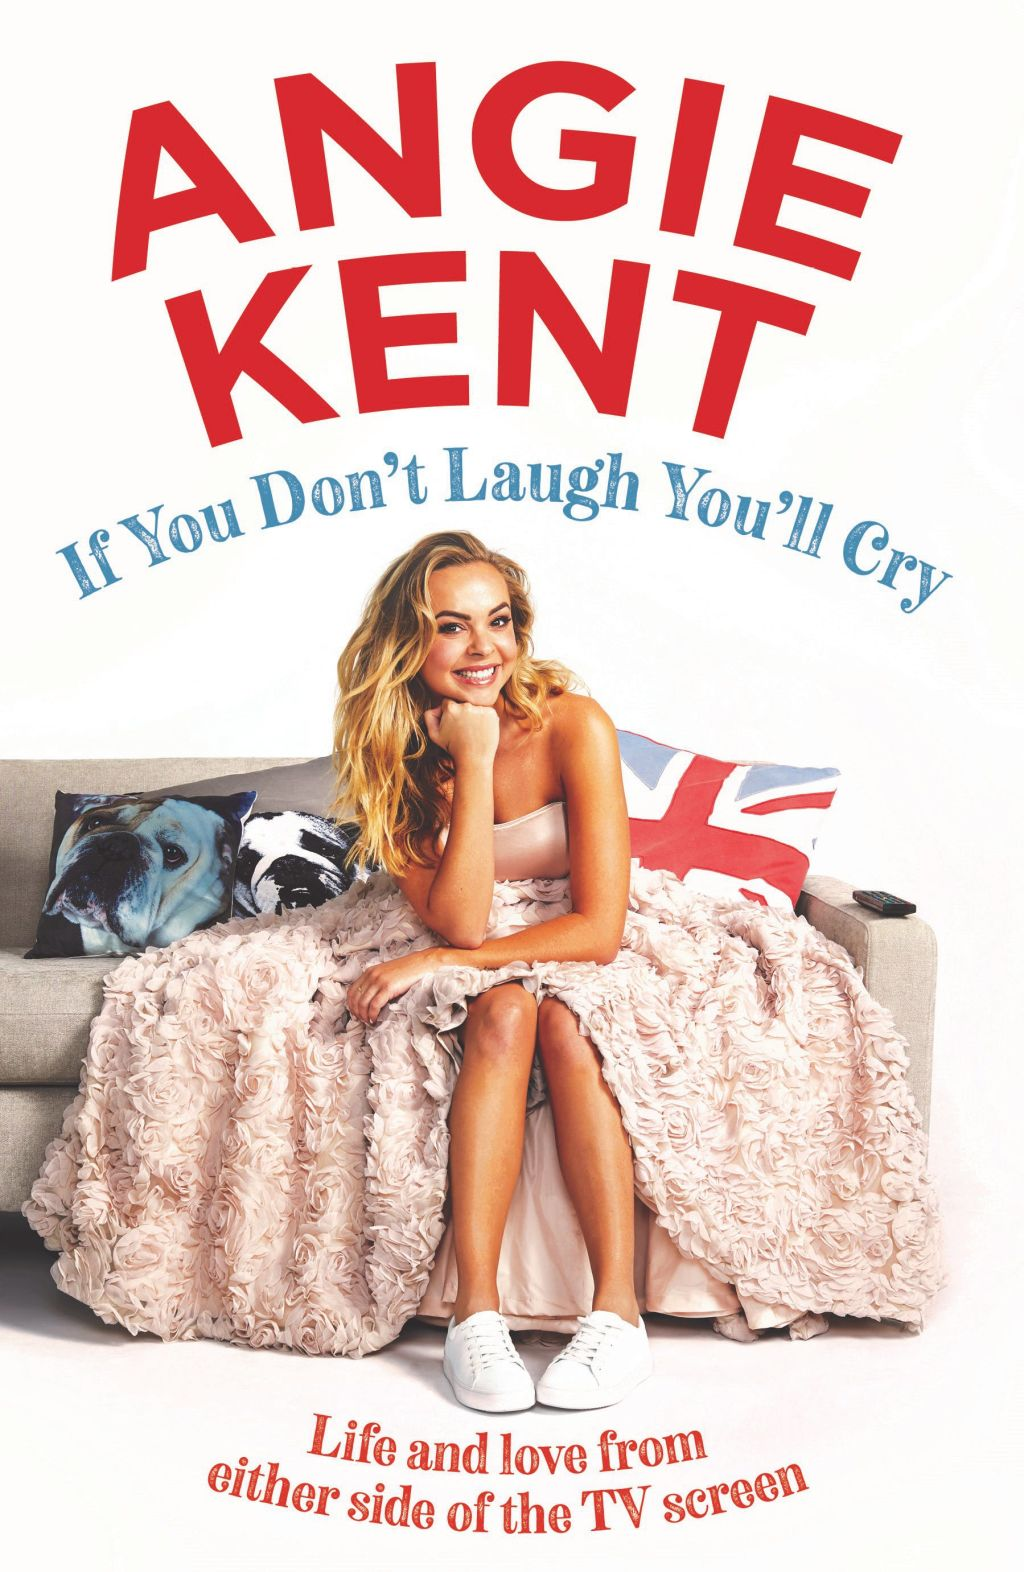 If You Don't Laugh You'll Cry by Angie Kent cover